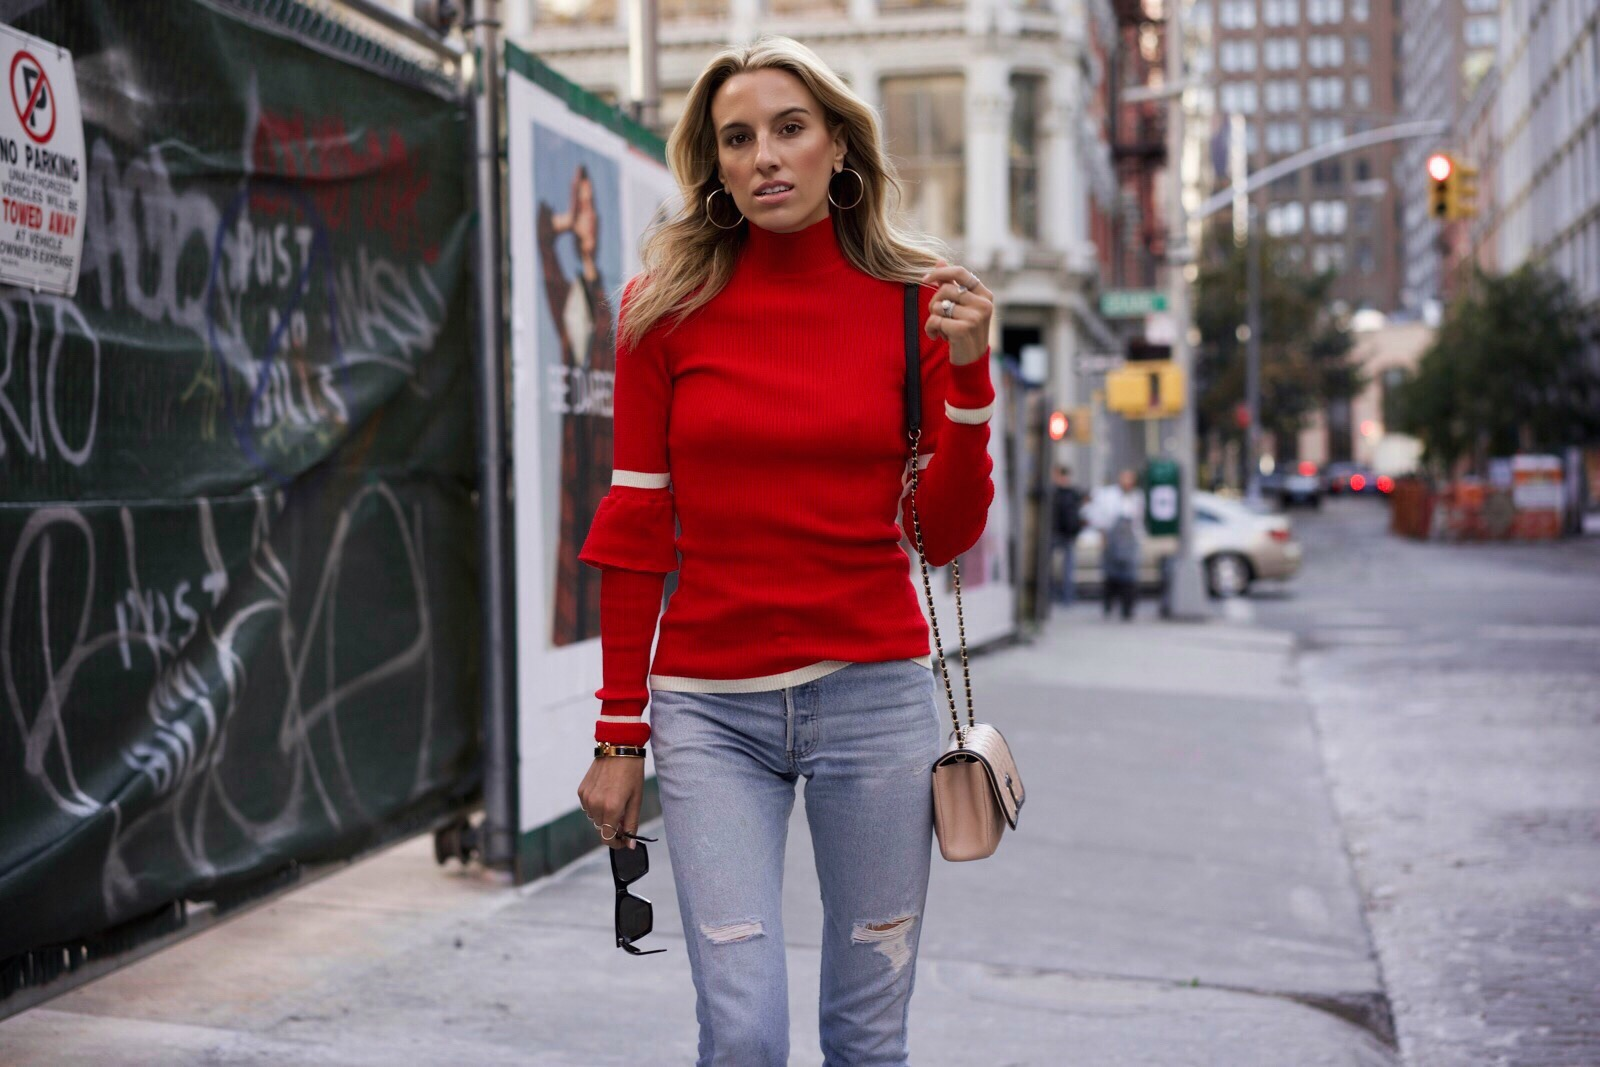 How to wear red, Fall must-haves, red knit, levis, Chanel bag